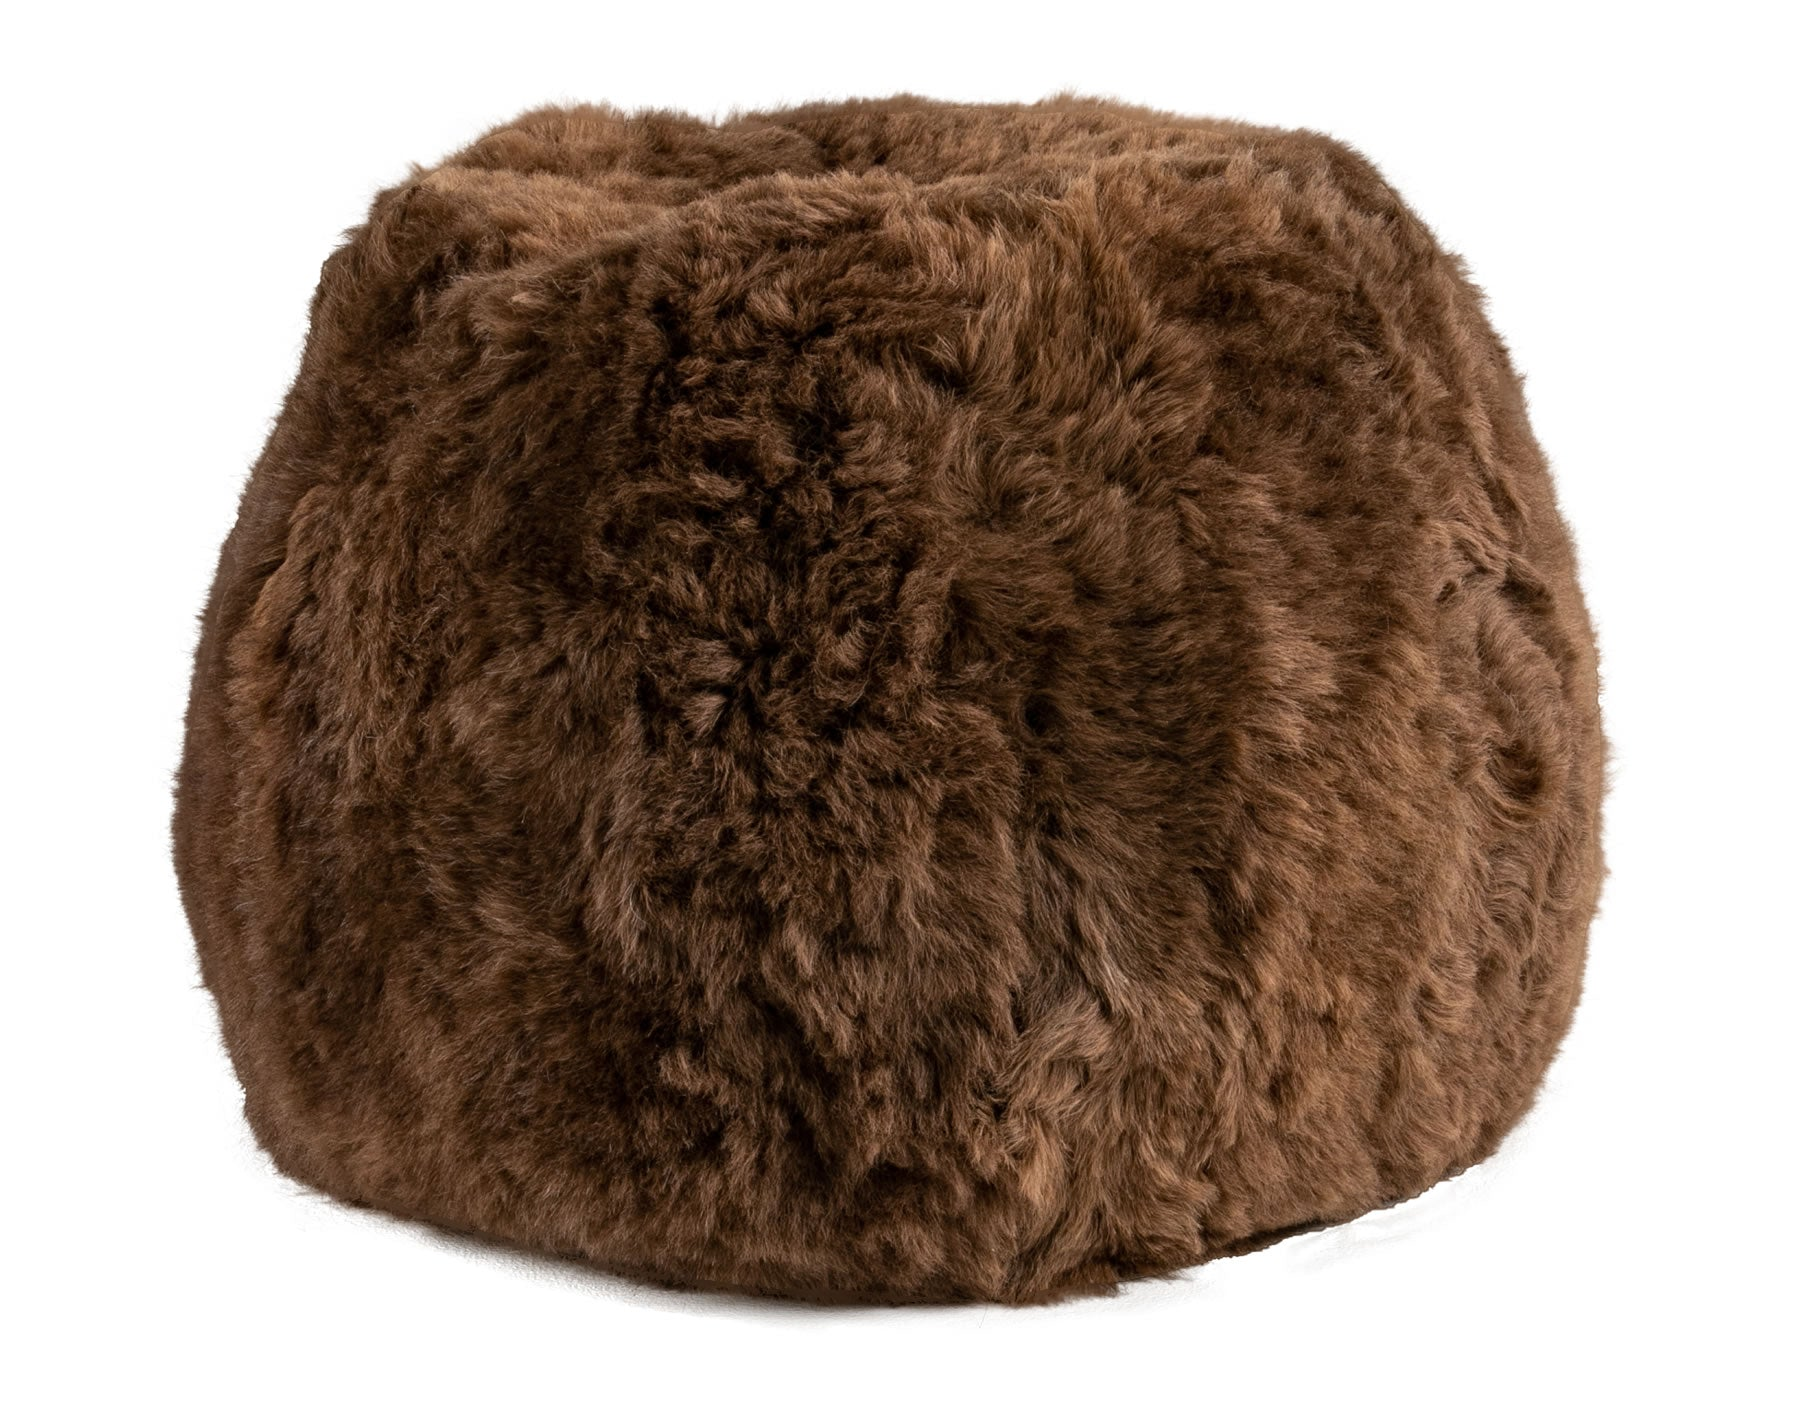 Pouf - Natural Rusty Brown